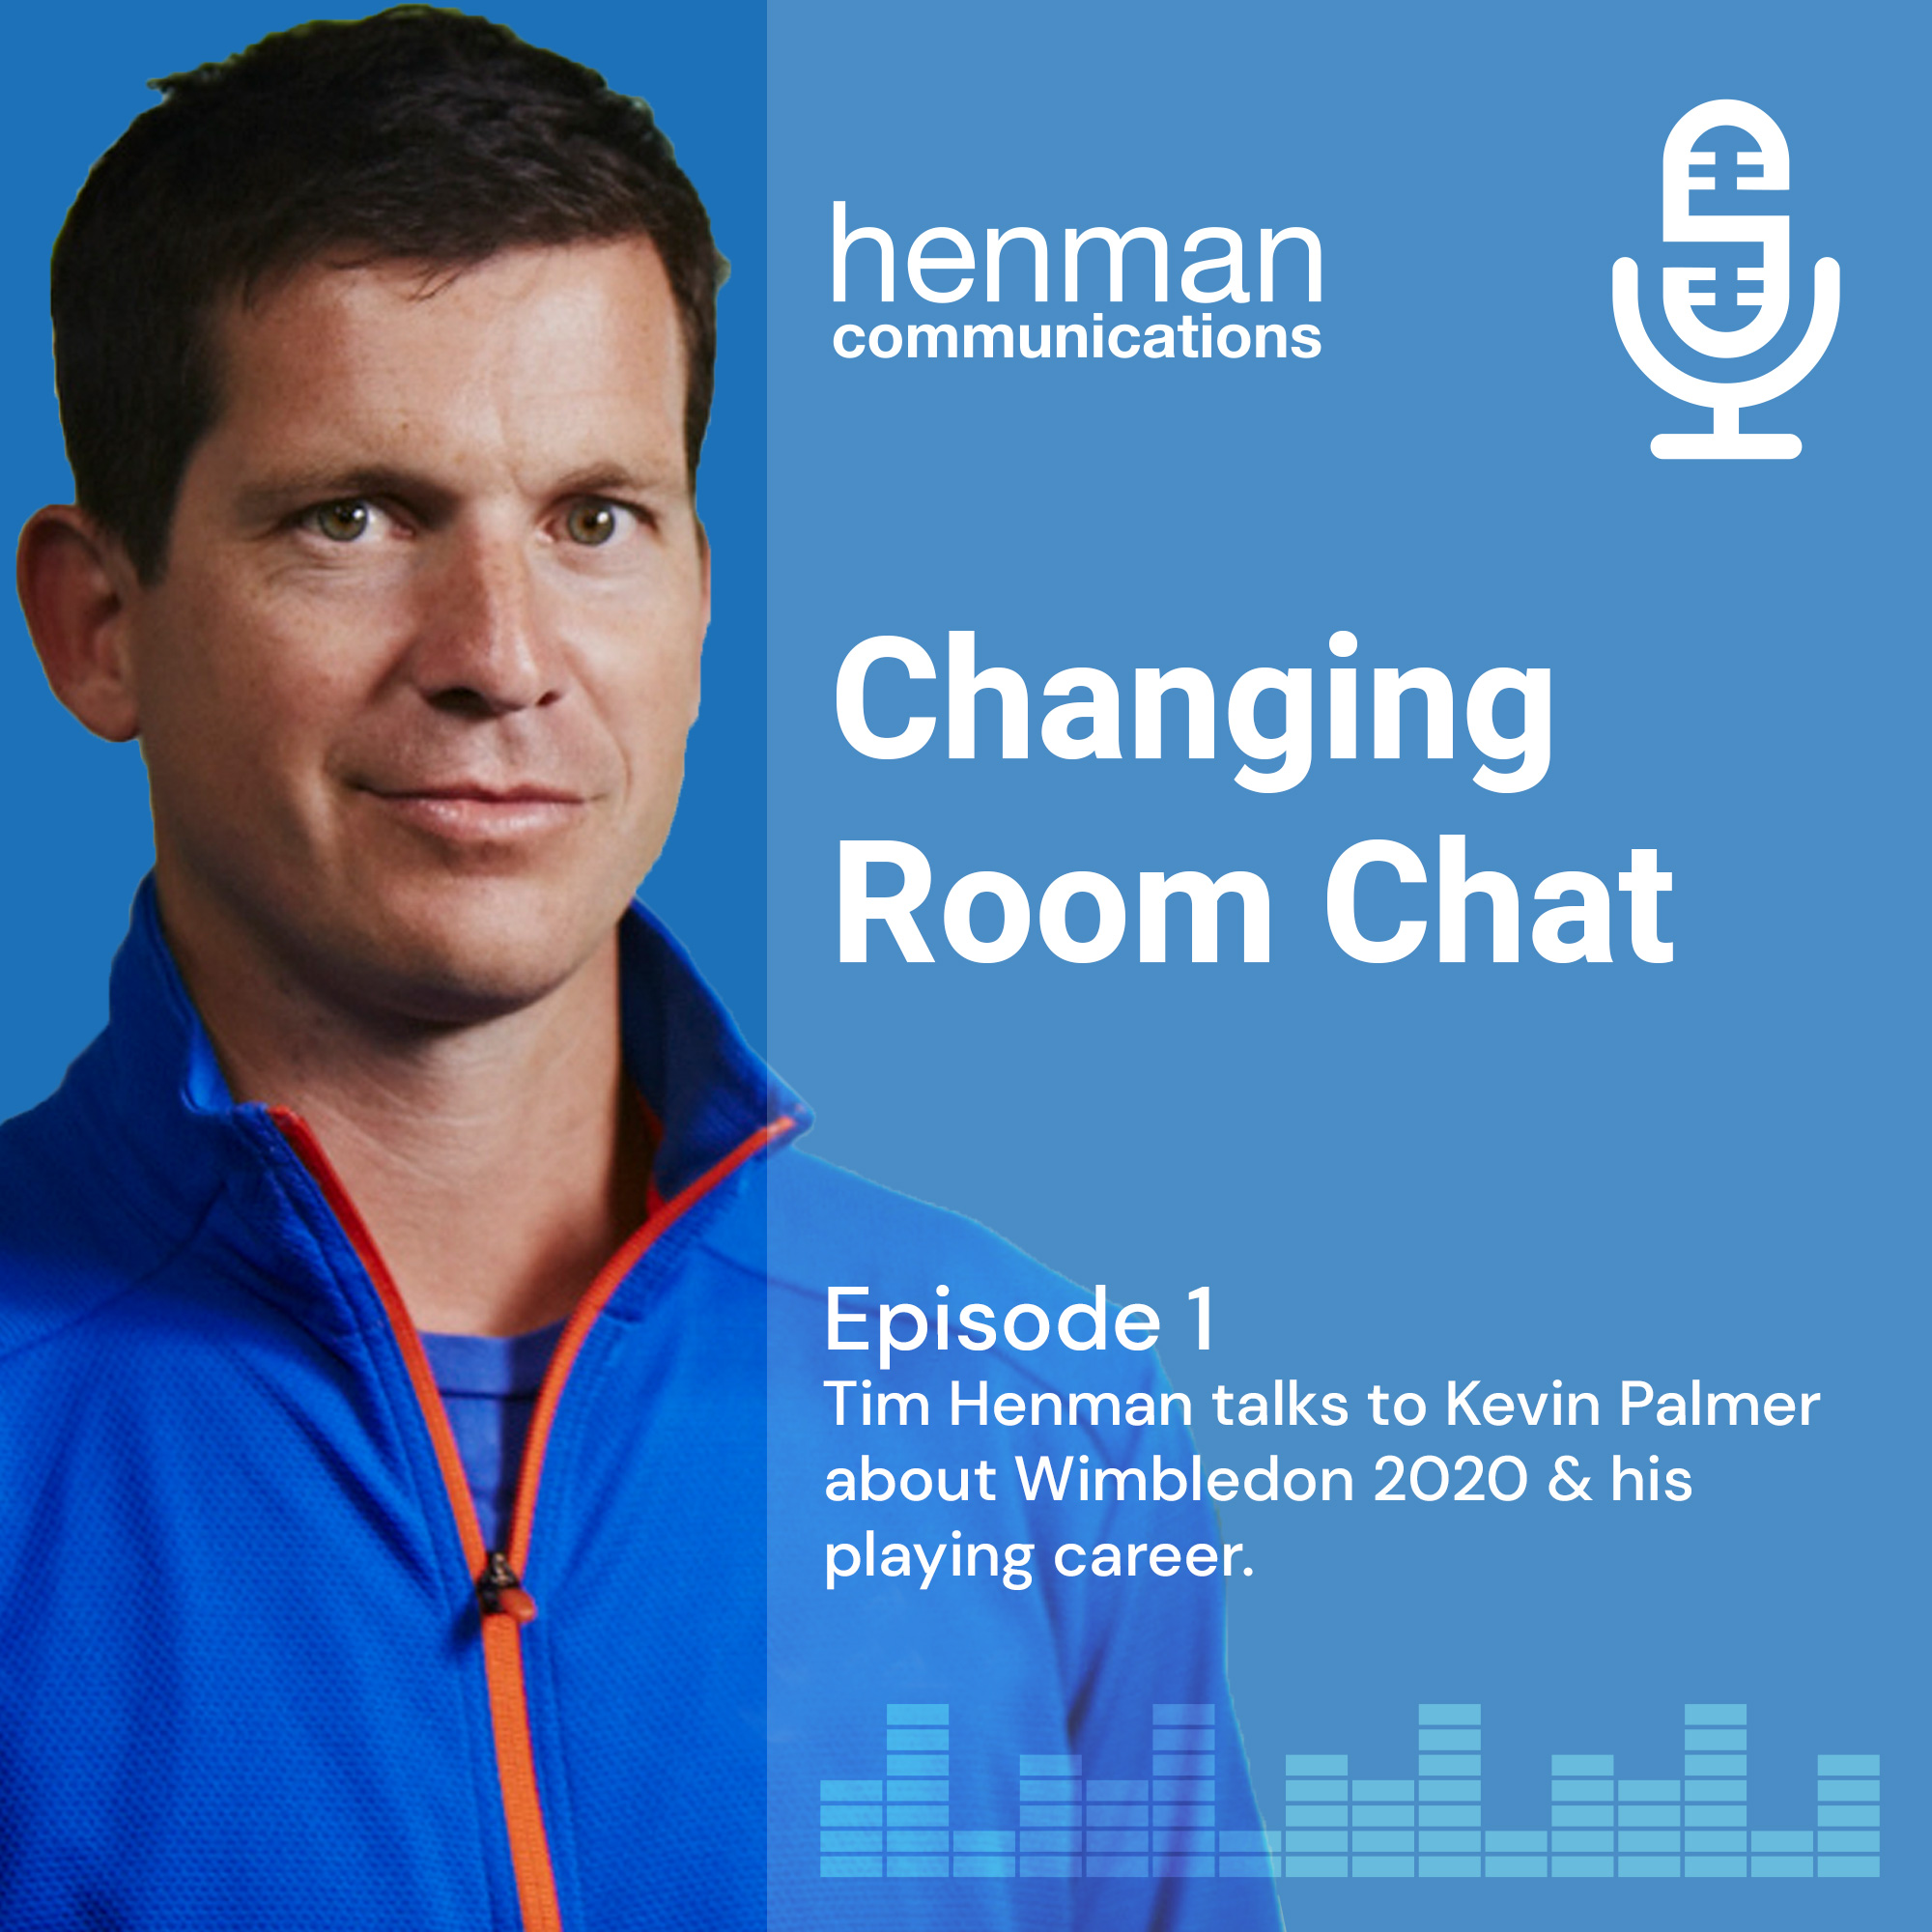 Changing Room Chat by Henman Communications - Episode 1: Tim Henman talks to Kevin Palmer about Wimbledon 2020 & his playing career.